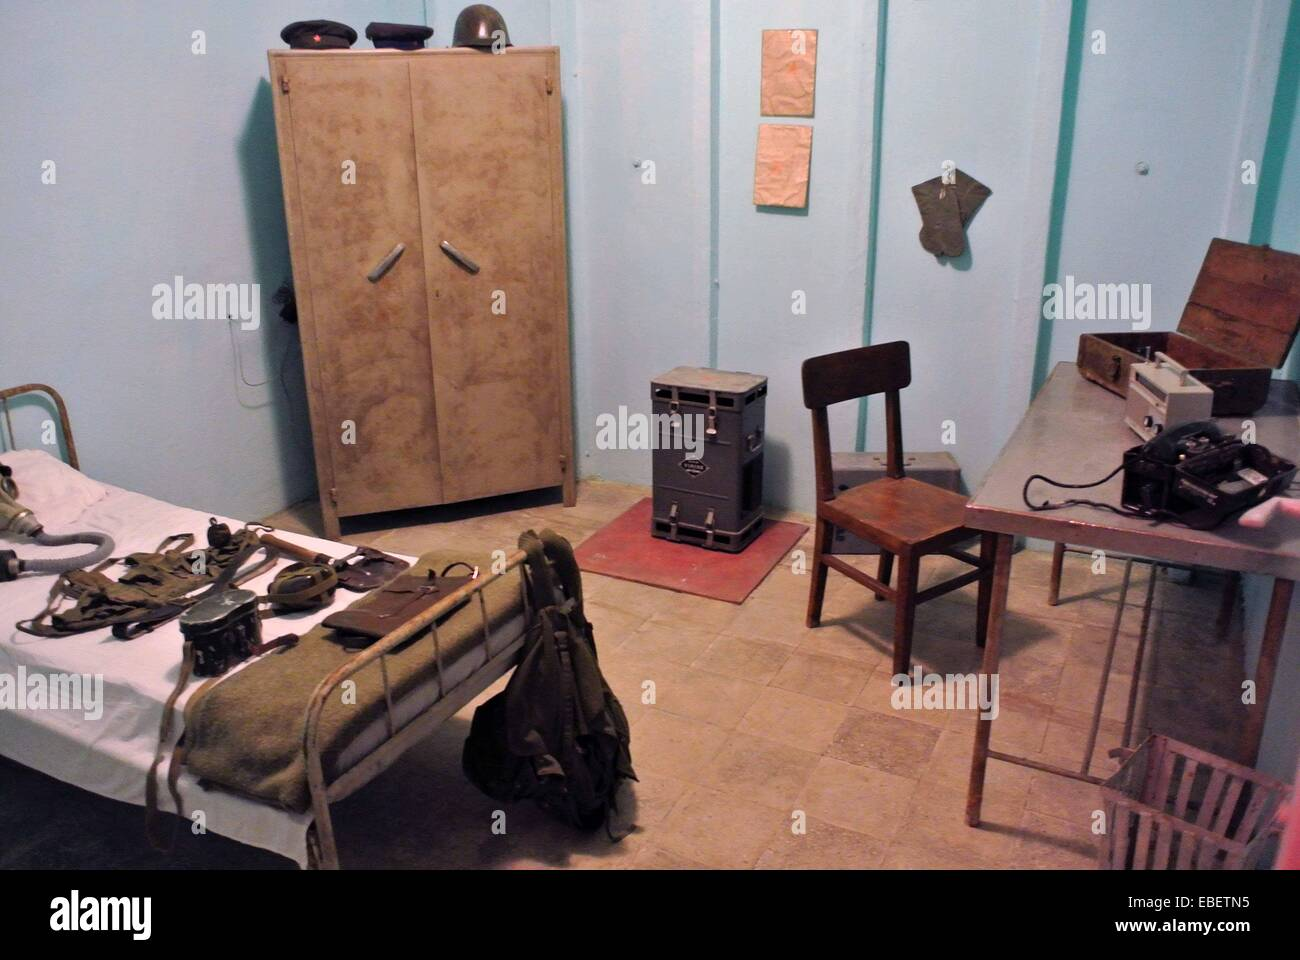 Tirana. 29th Nov, 2014. Photo take on Nov. 29, 2014 shows the exhibition room inside the anti-nuclear bunker built - Stock Image